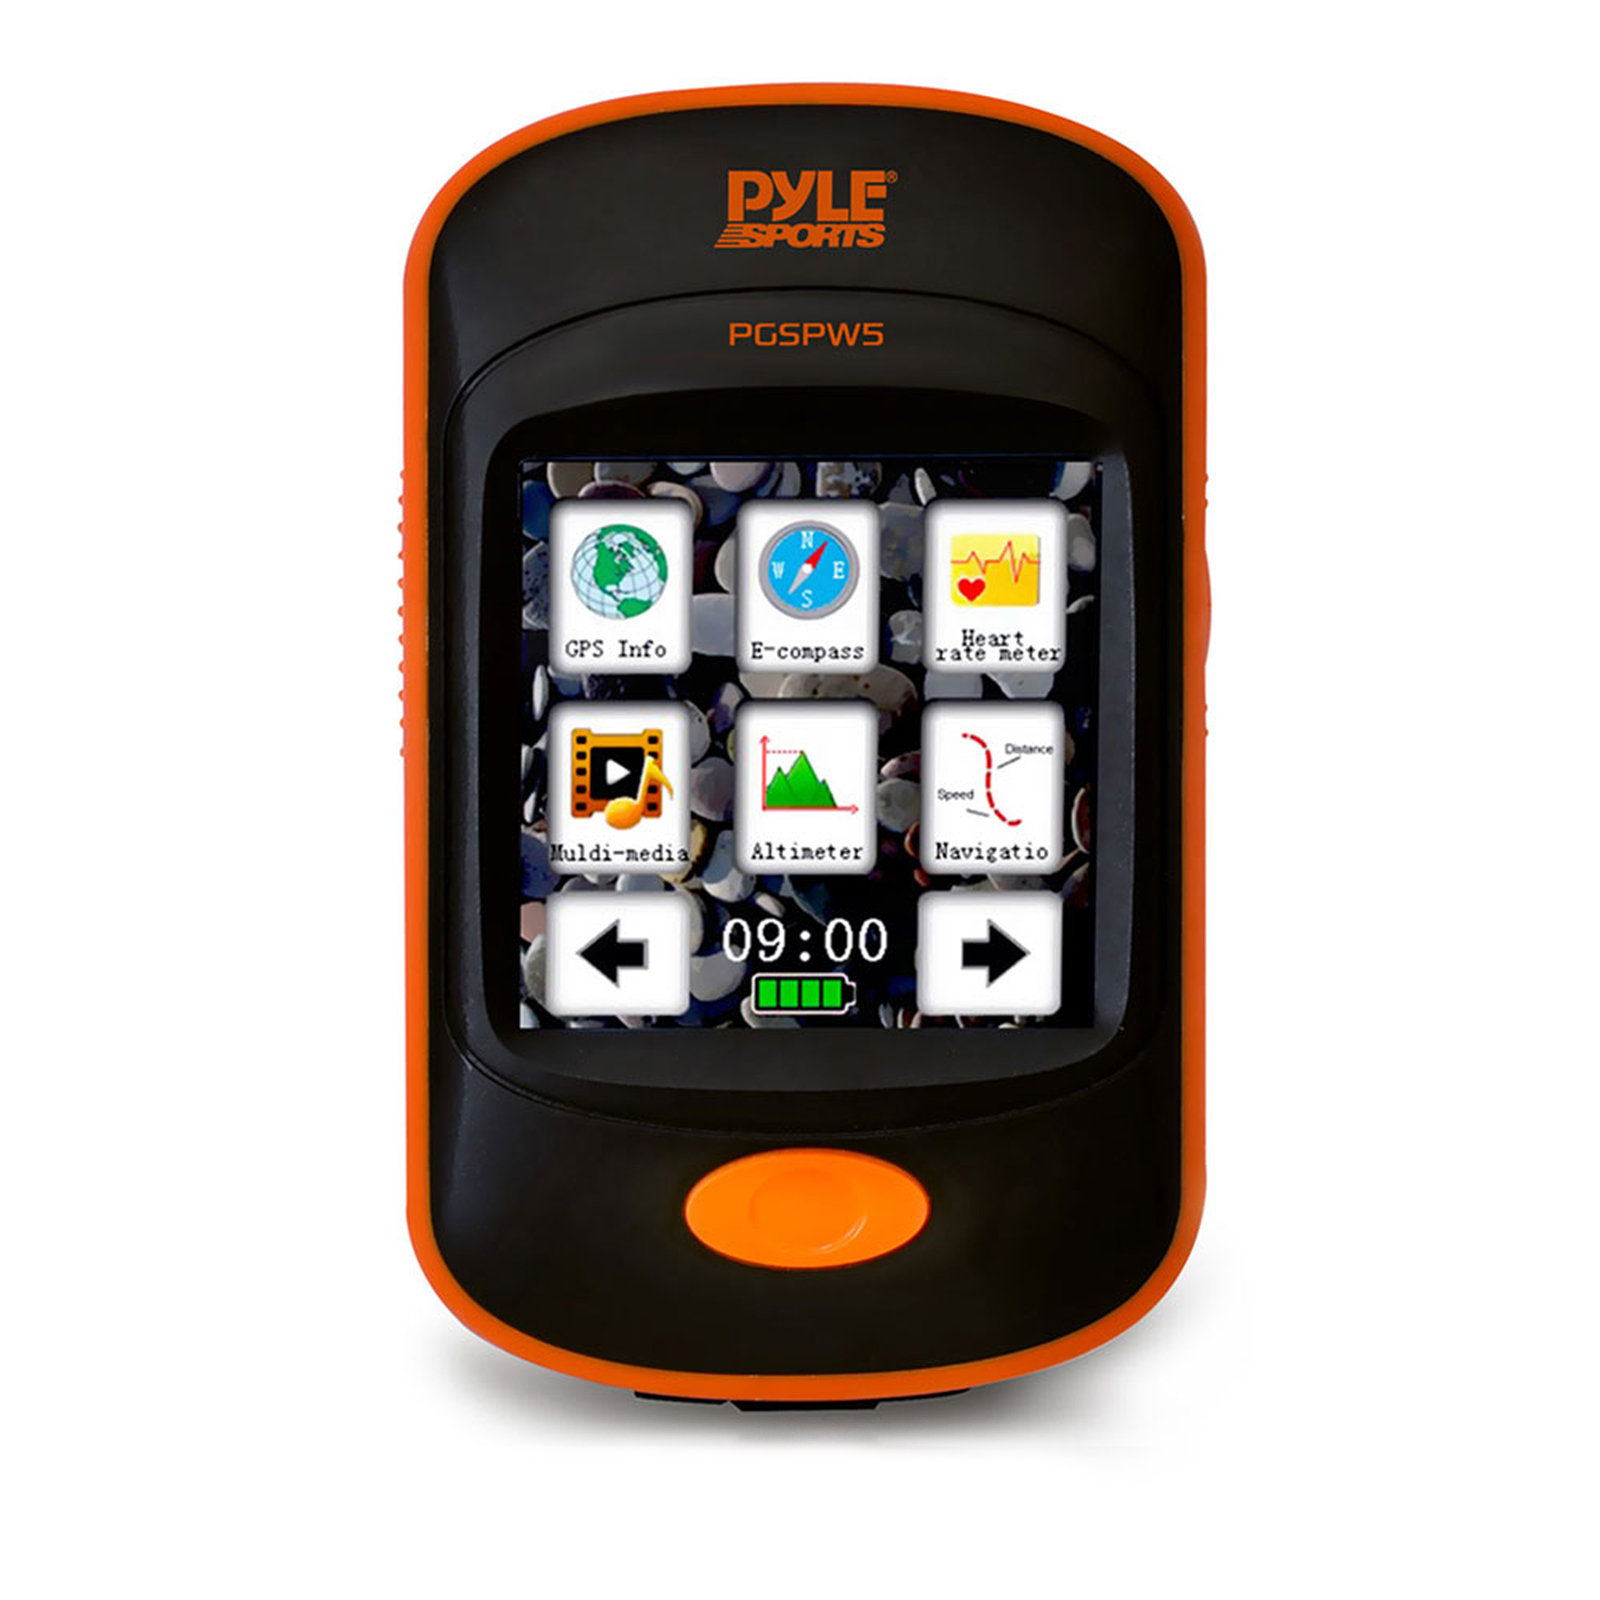 Pyle GPS Navigation Sporting Unit with Built-in MP3 Player, Pedometer, Speedometer, Altimeter,